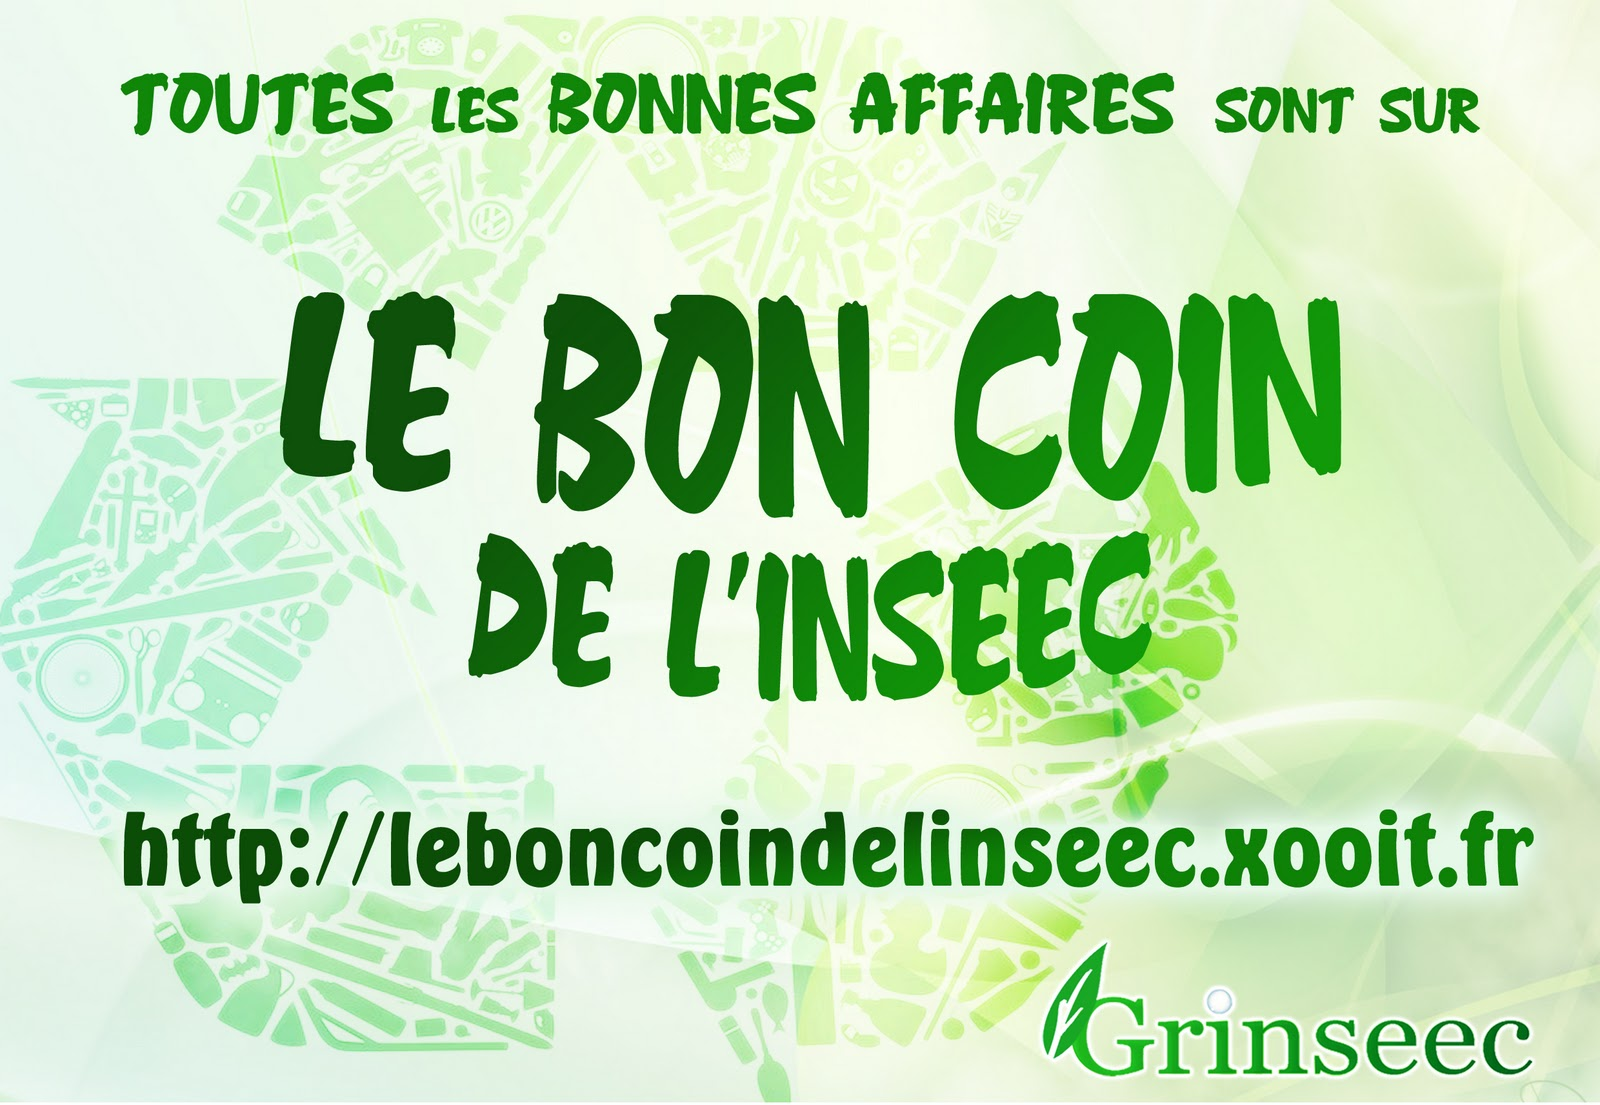 Le bon coin location maison 33